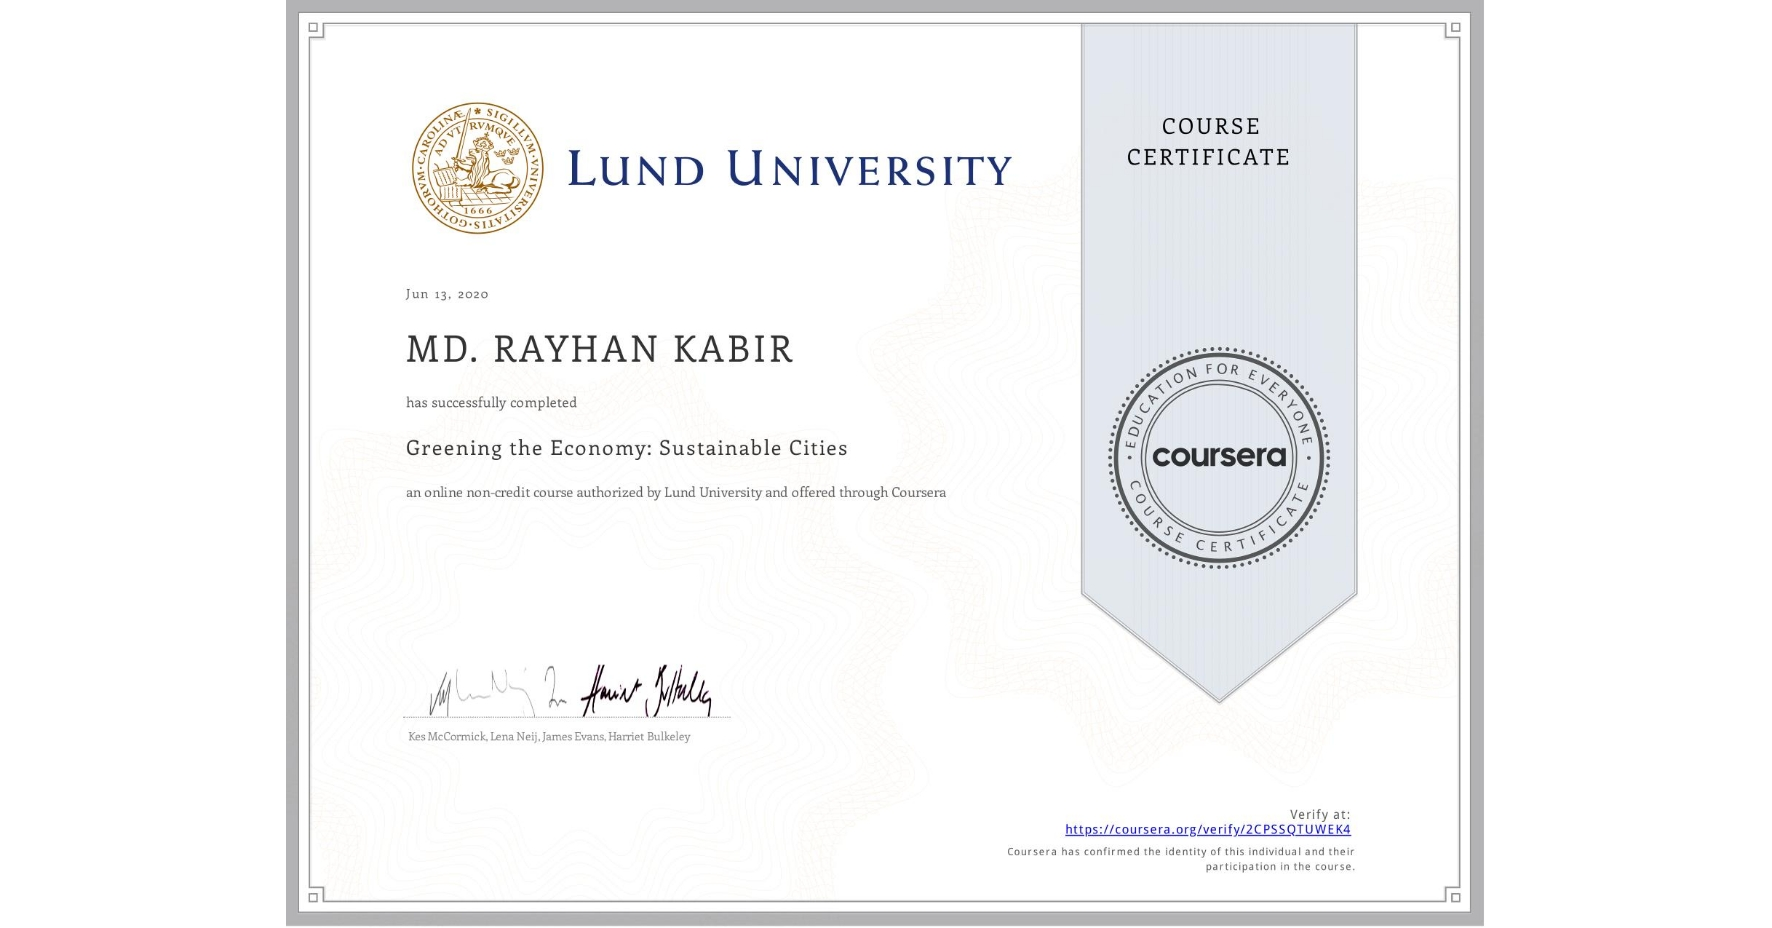 View certificate for MD. RAYHAN  KABIR, Greening the Economy: Sustainable Cities, an online non-credit course authorized by Lund University and offered through Coursera